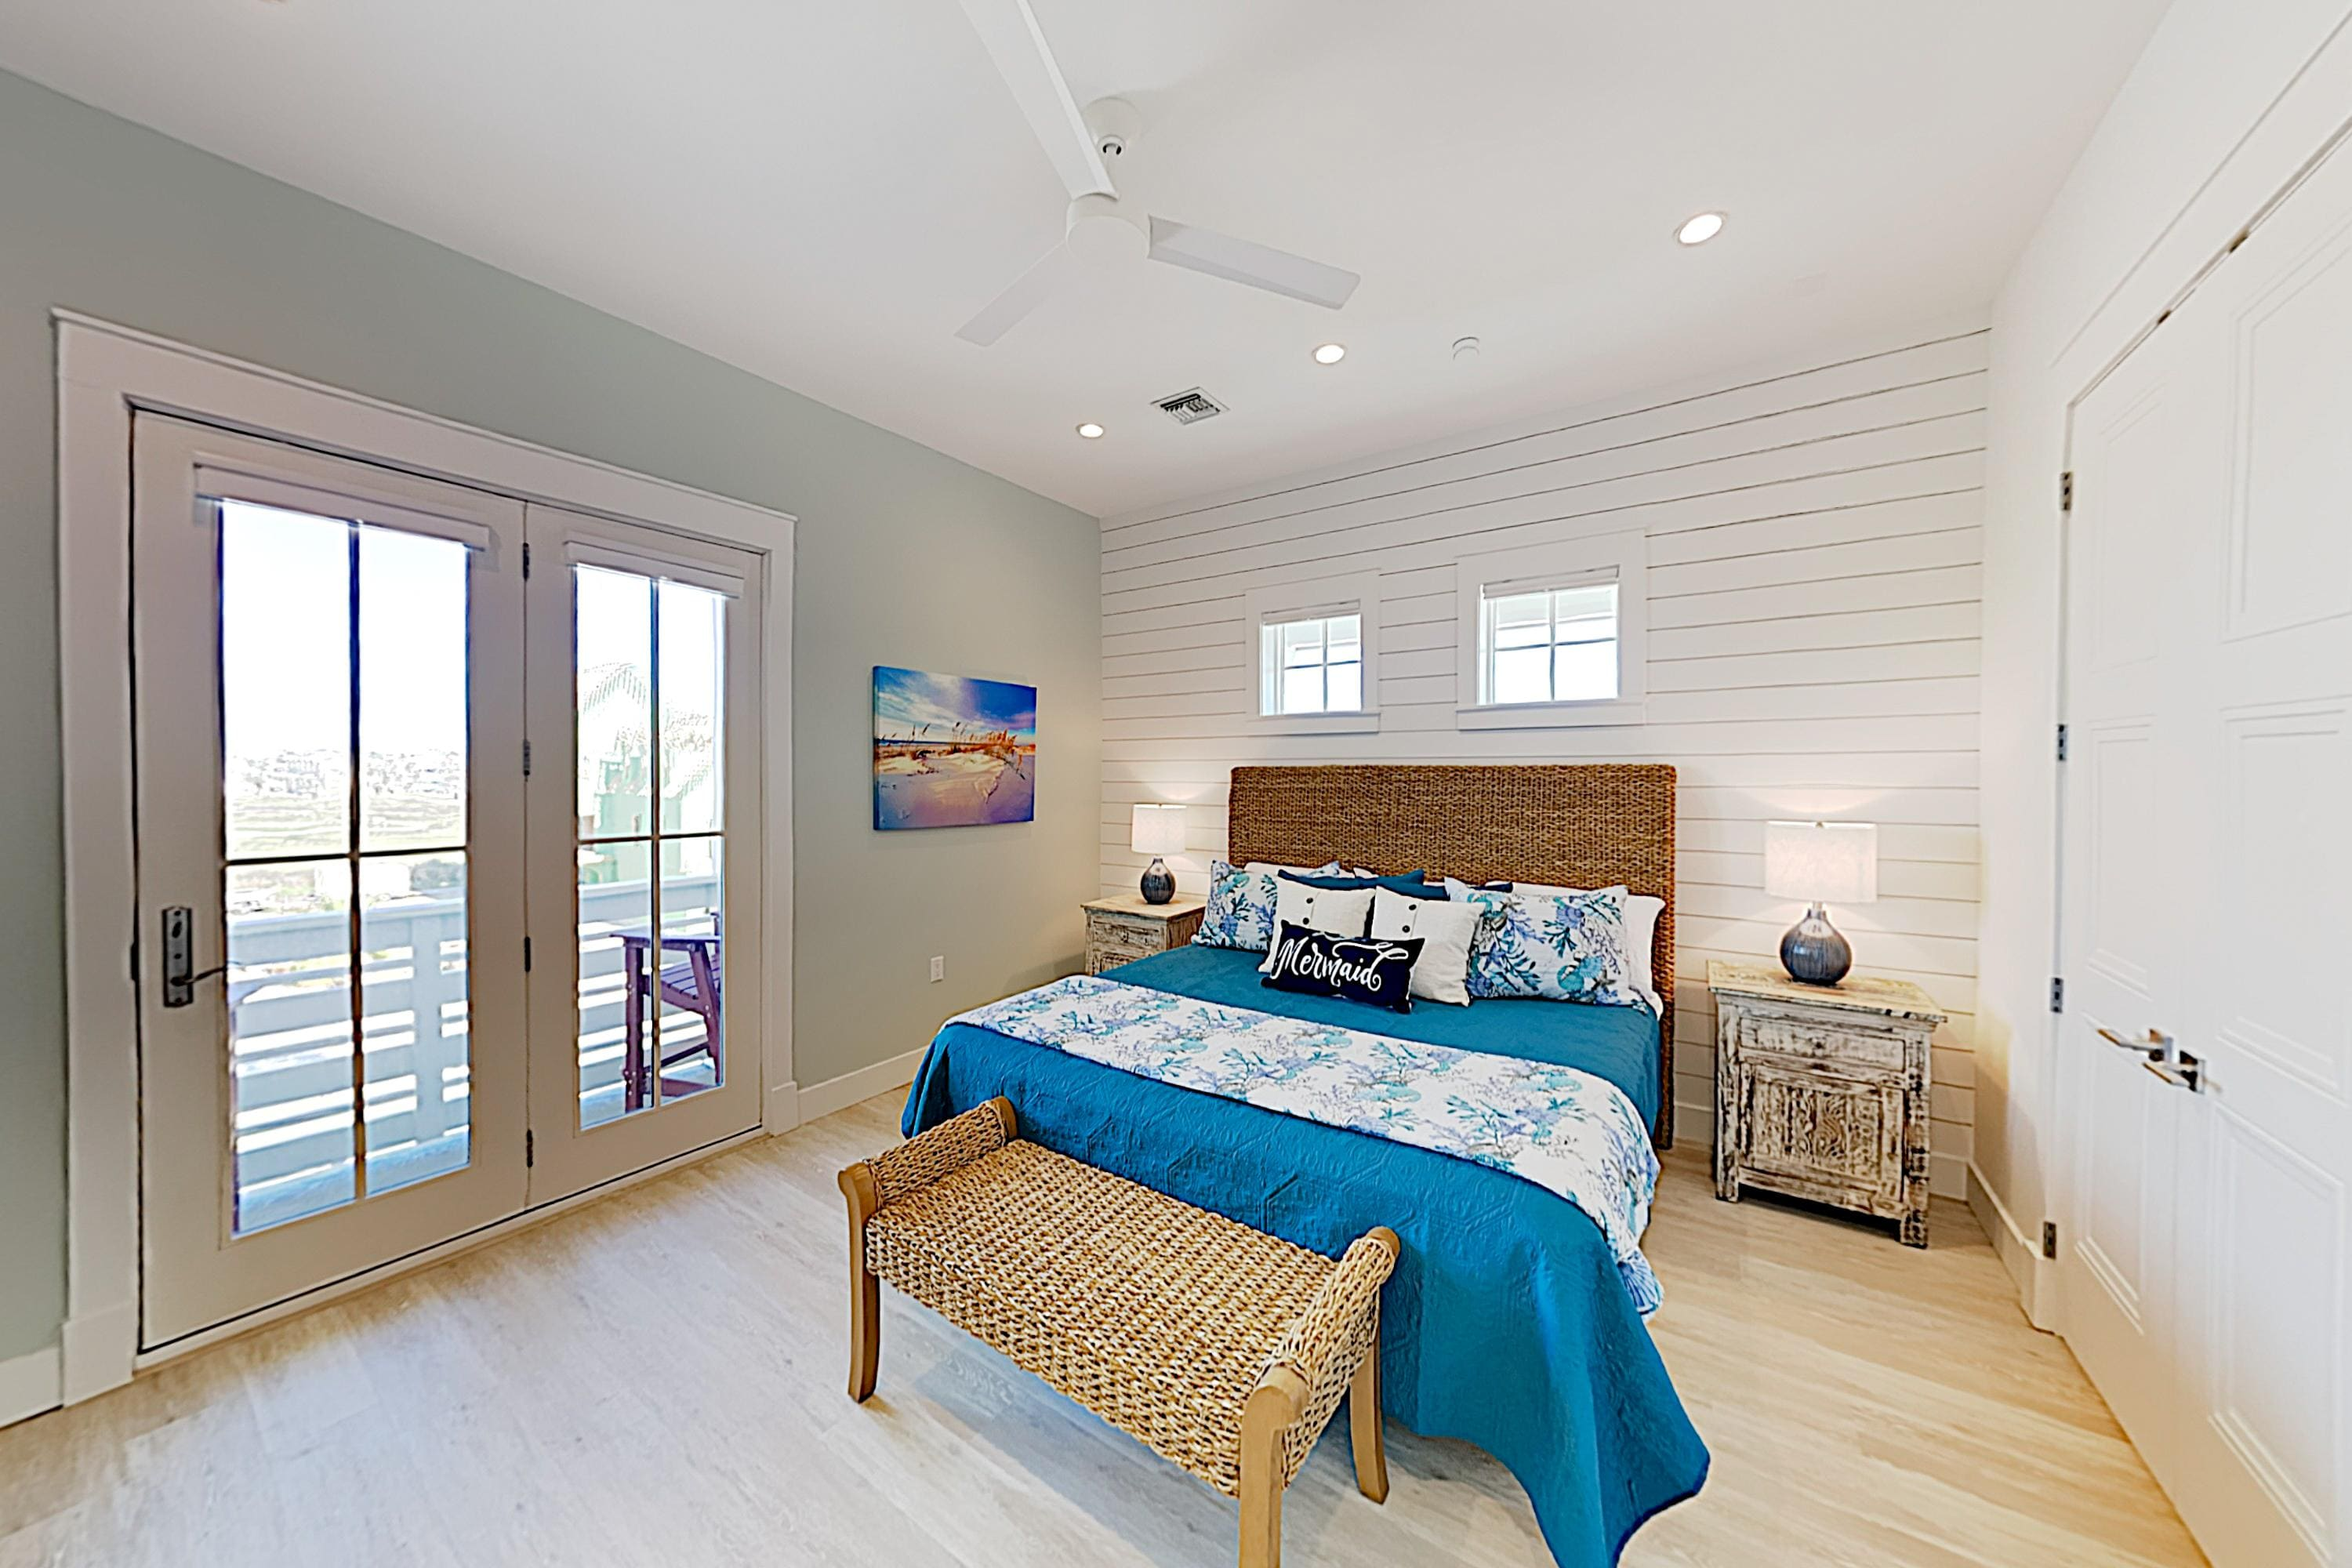 Sleep soundly in the master bedroom, featuring a king-size bed.